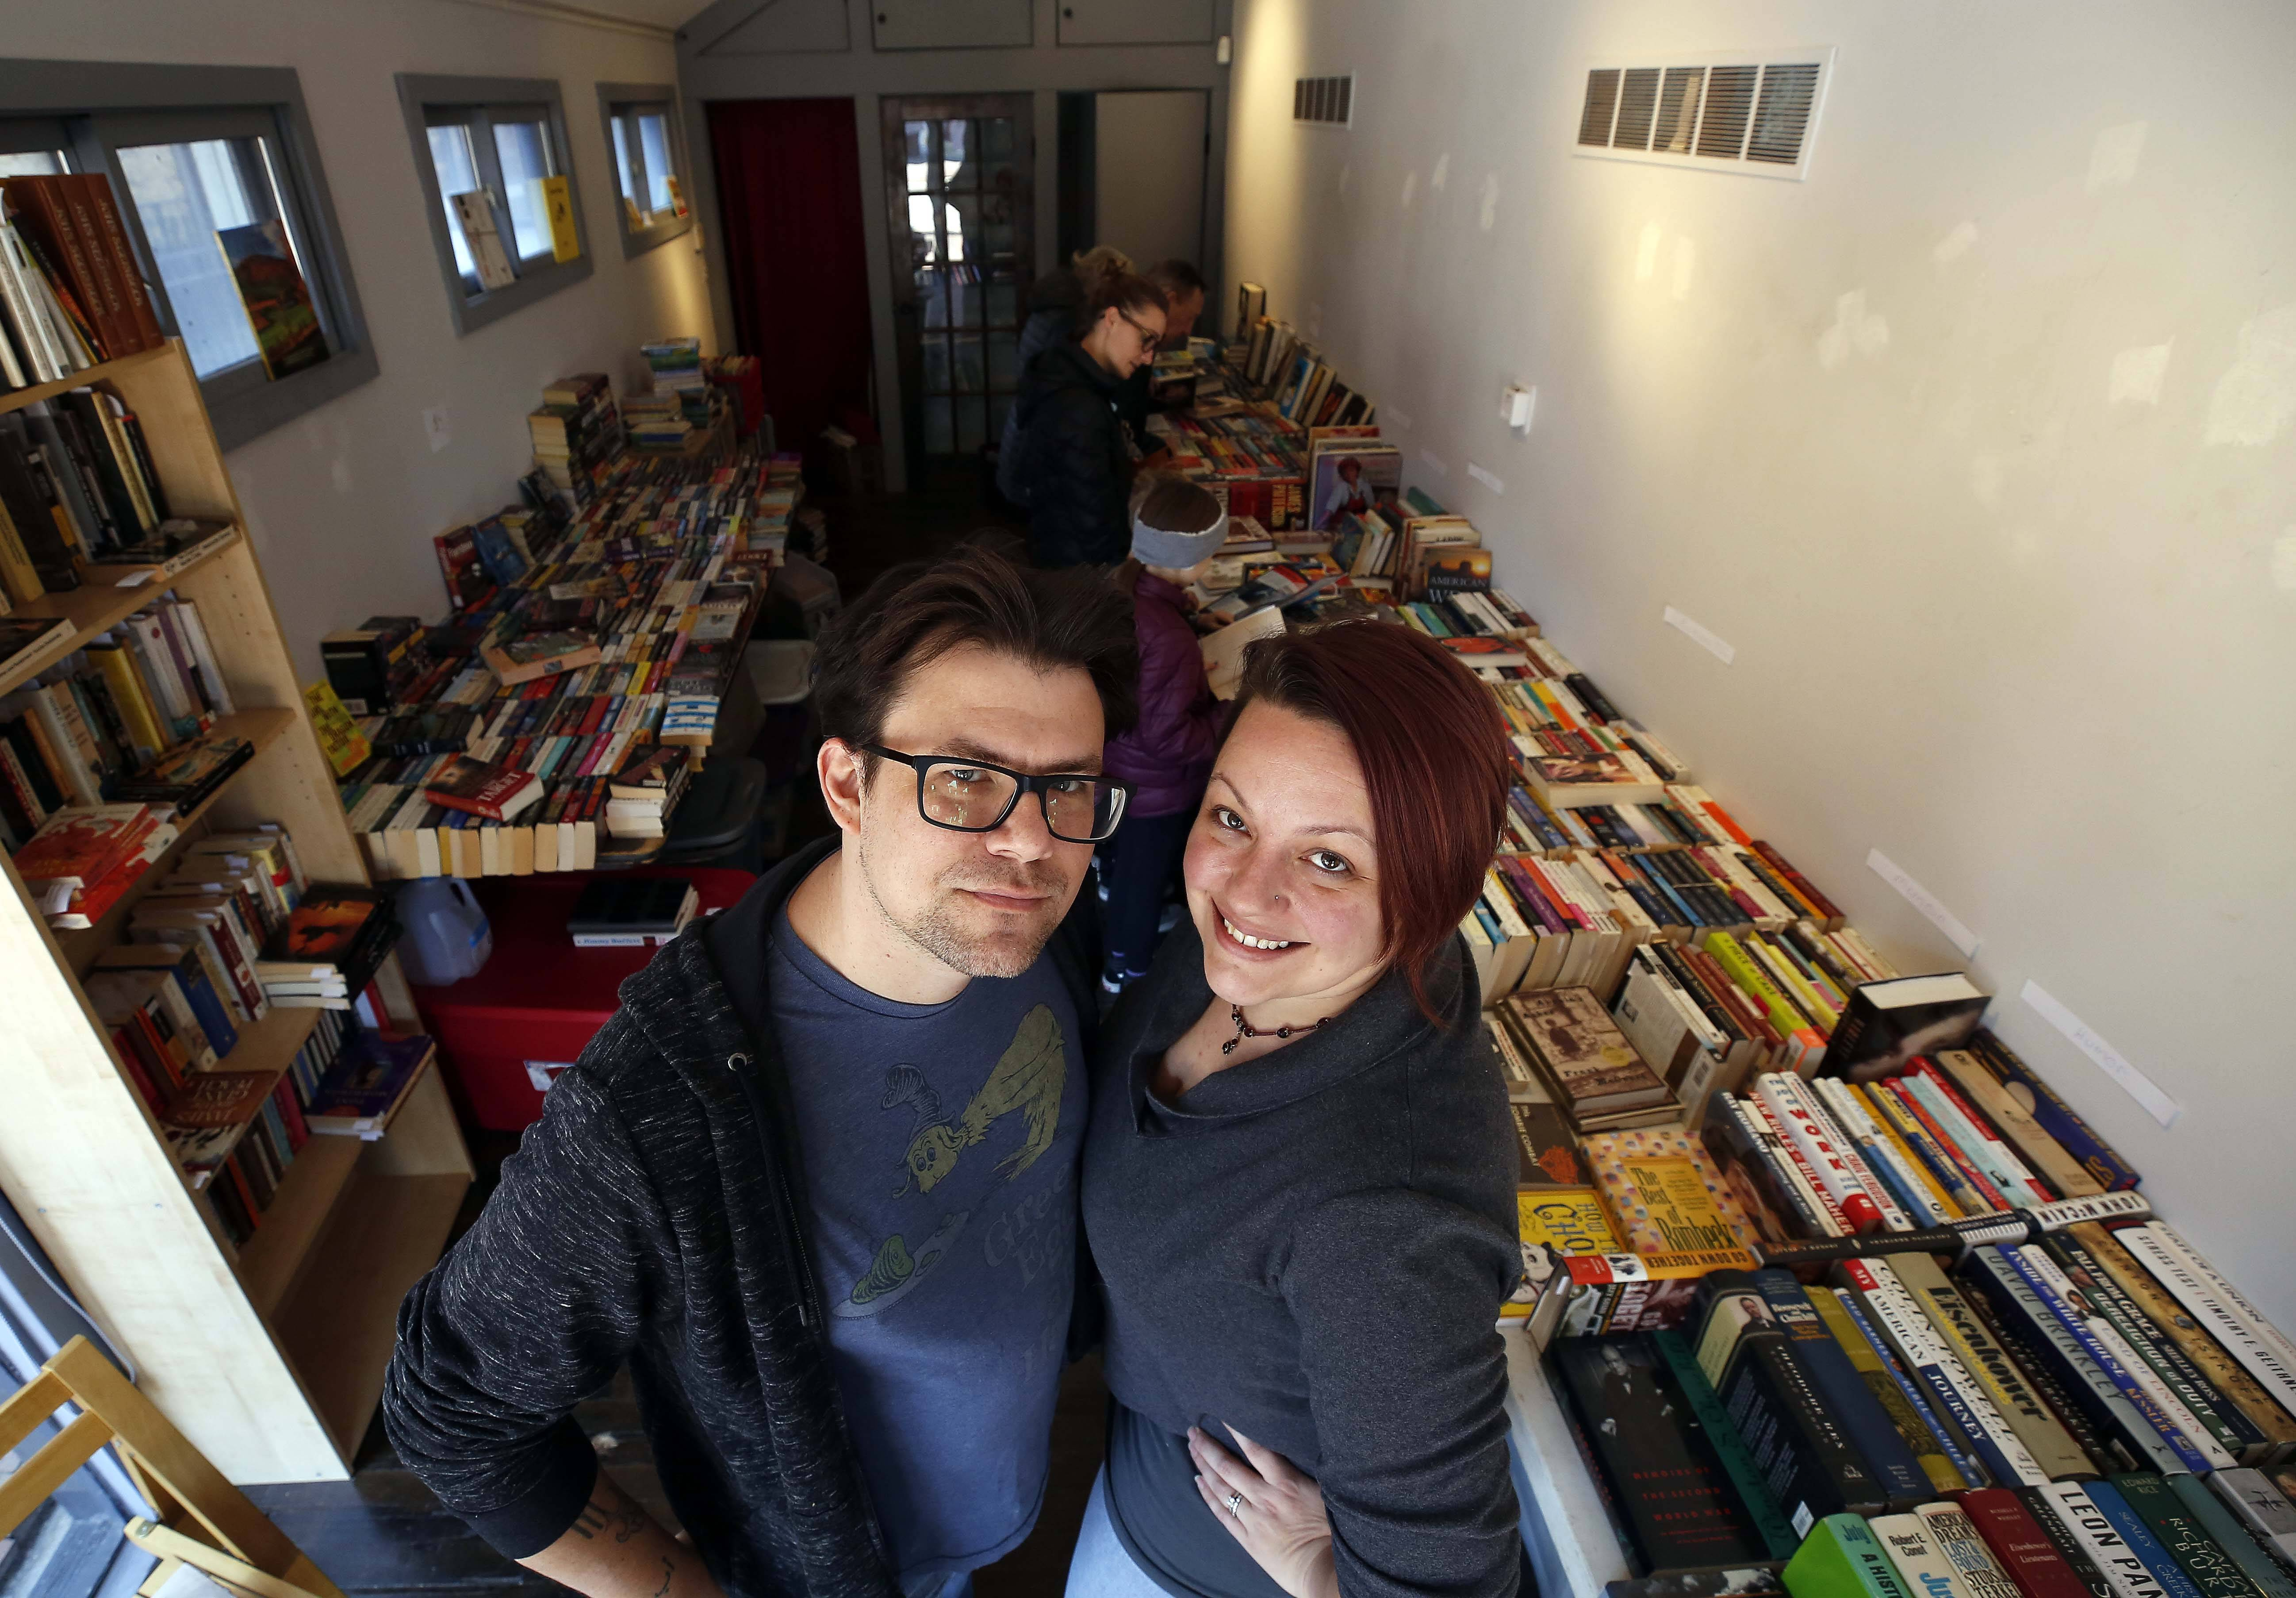 James Stickling and his wife Lizzy Evensen have opened a bookstore in Batavia called, simply, The Book Shop.